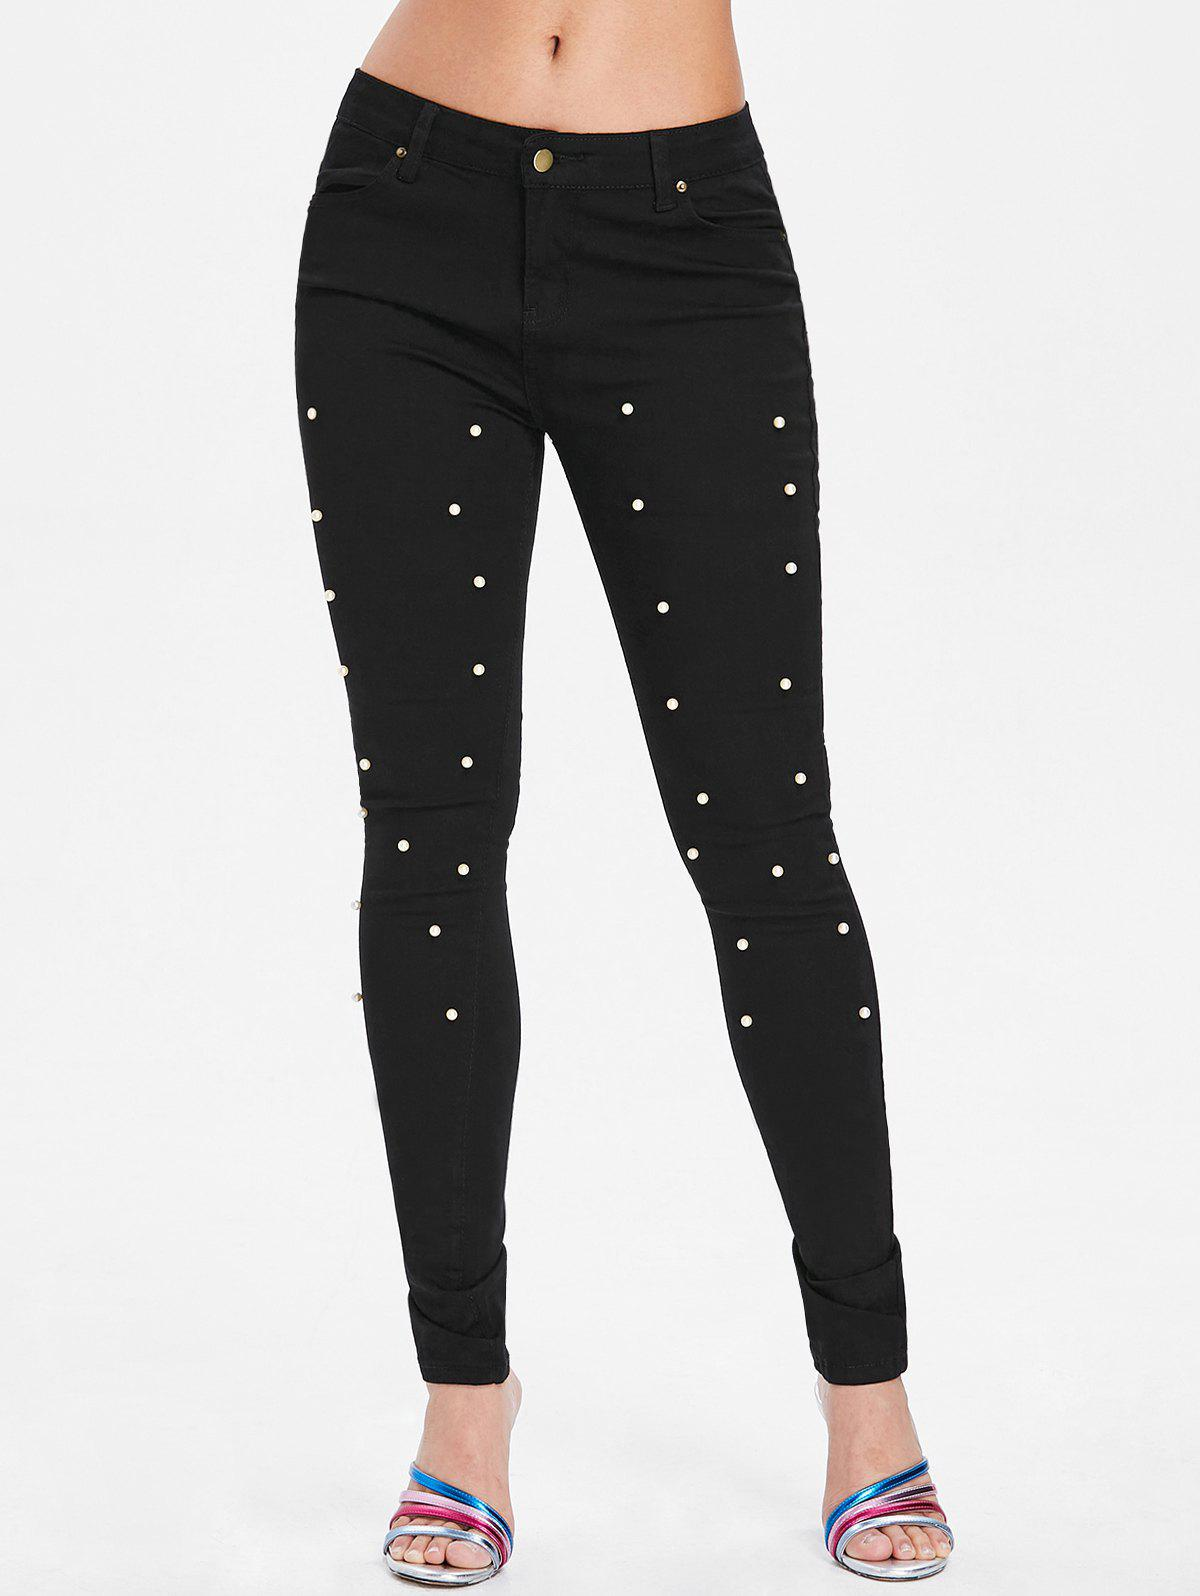 Pantalon Moulant en Perles Fantaisies Noir XL